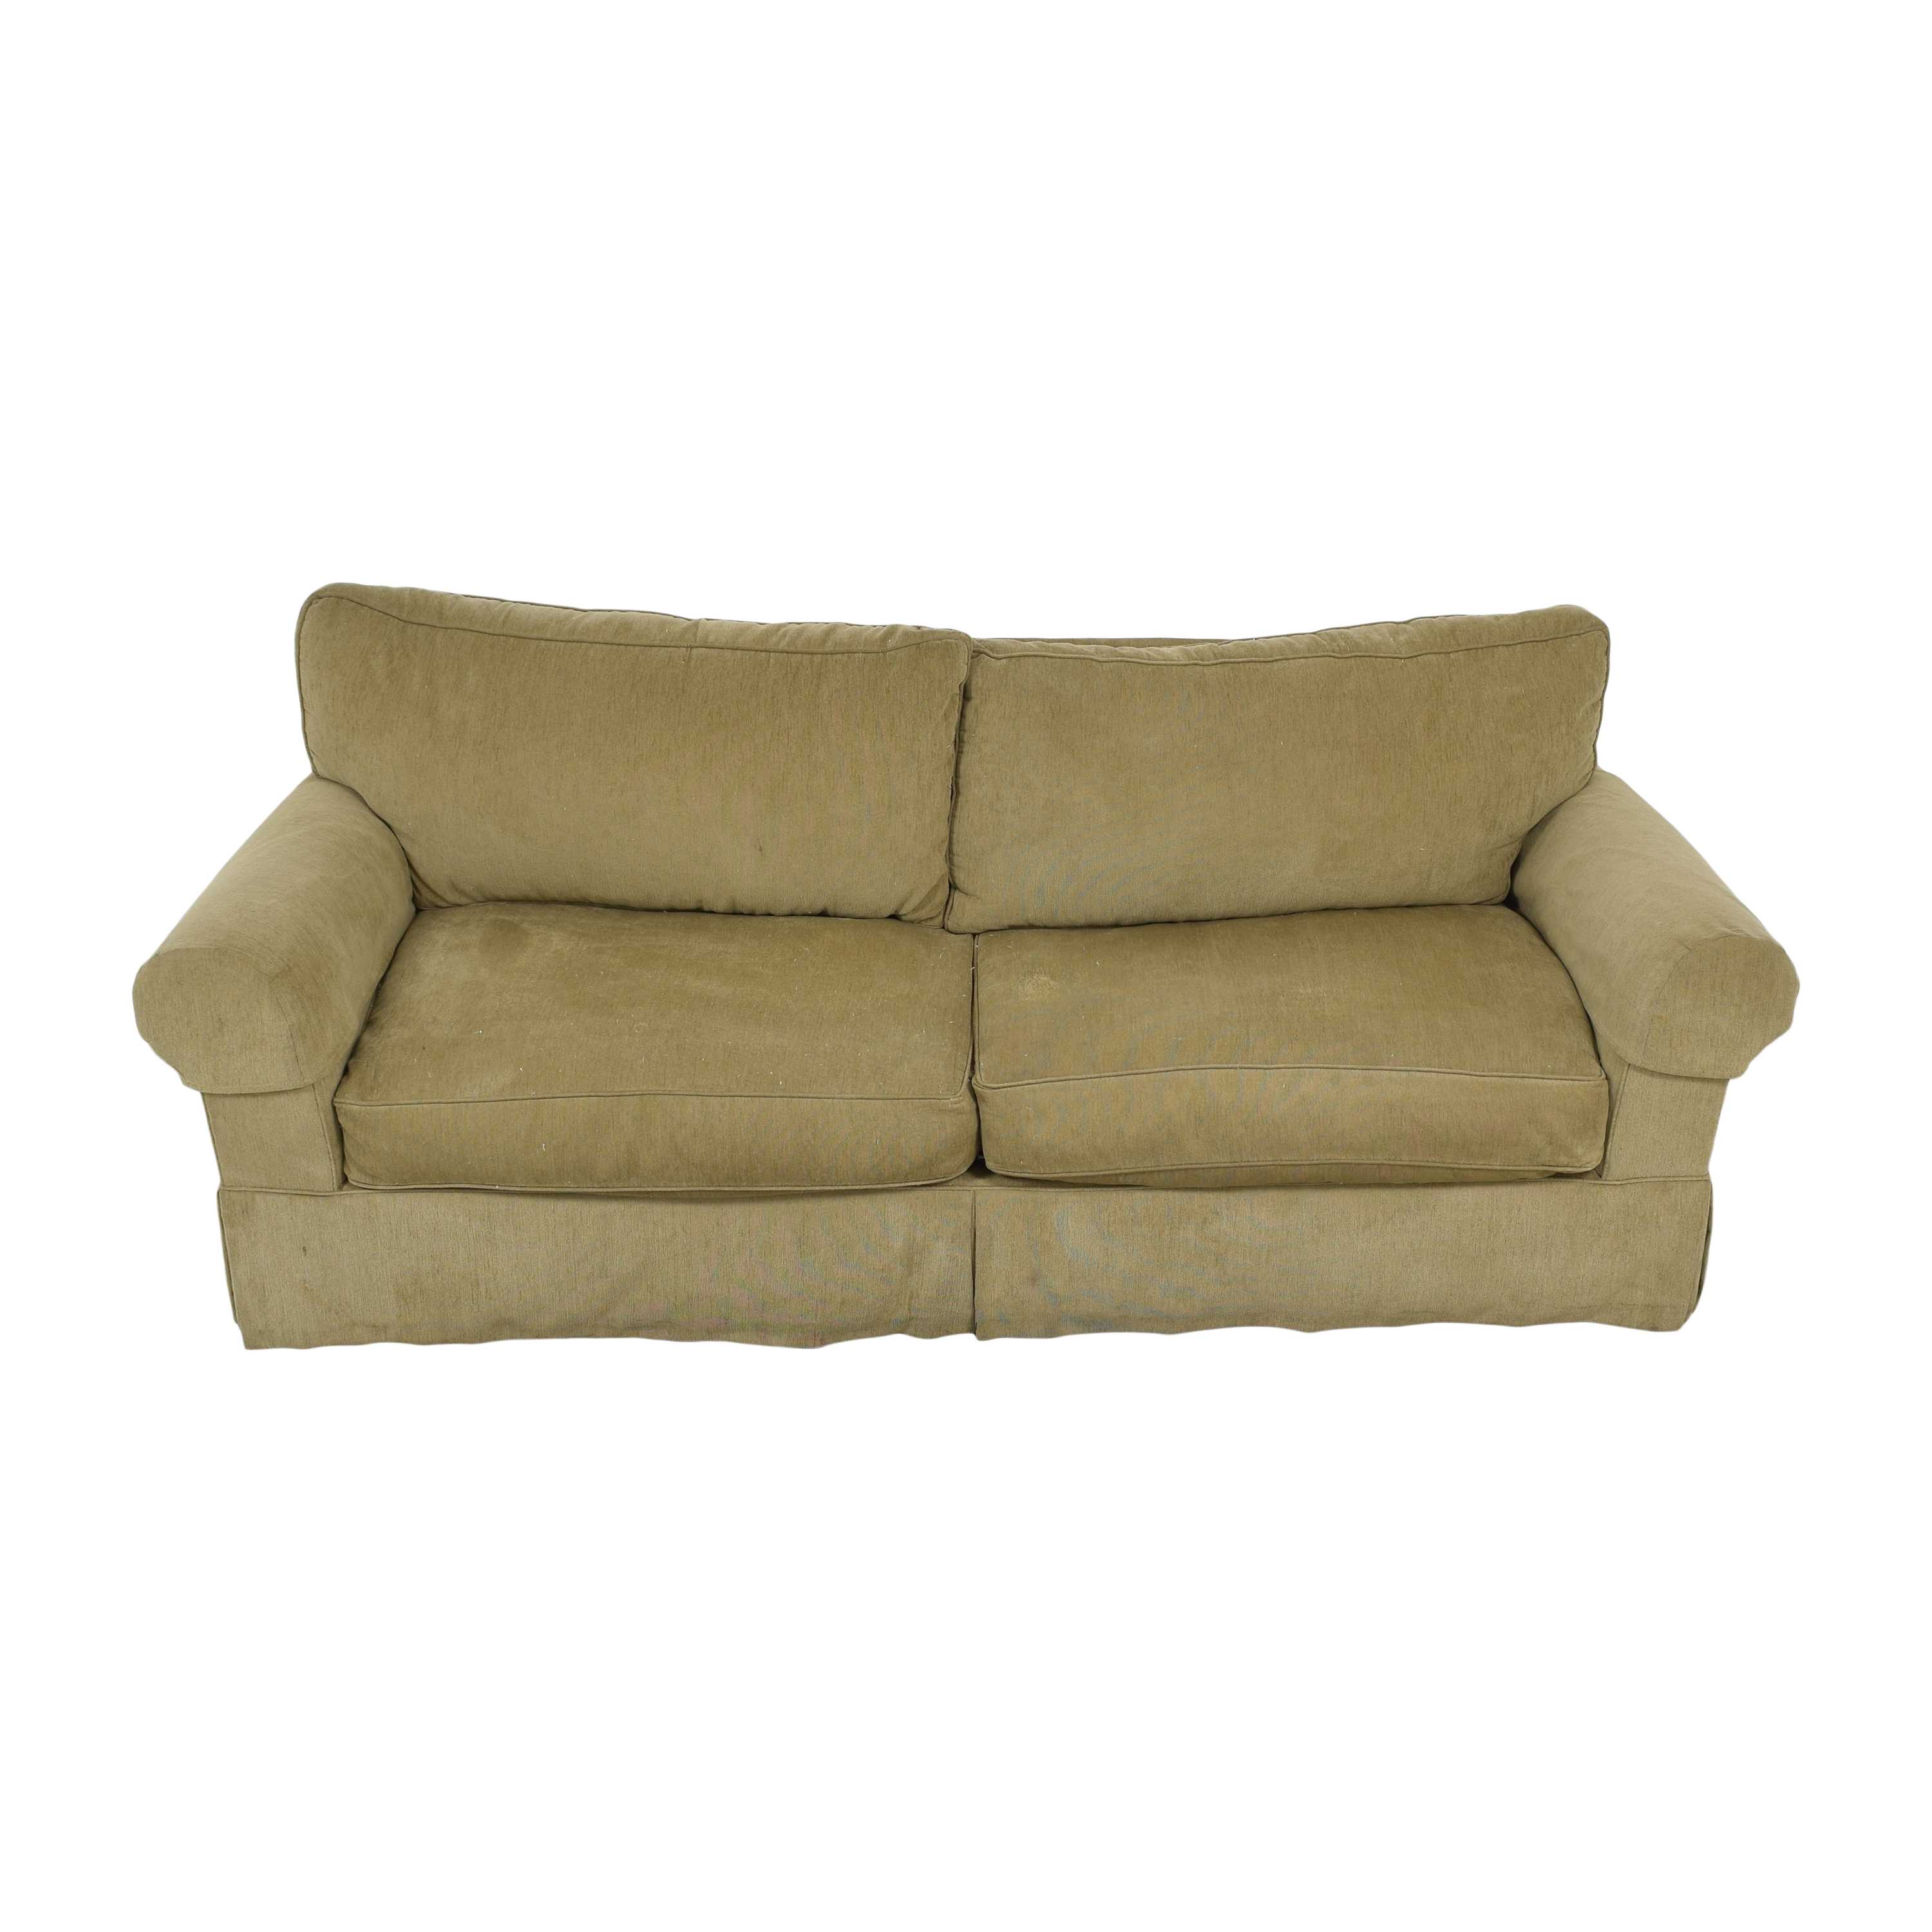 Restoration Hardware Restoration Hardware Grand Scale Roll Arm Slipcover Sofa nyc